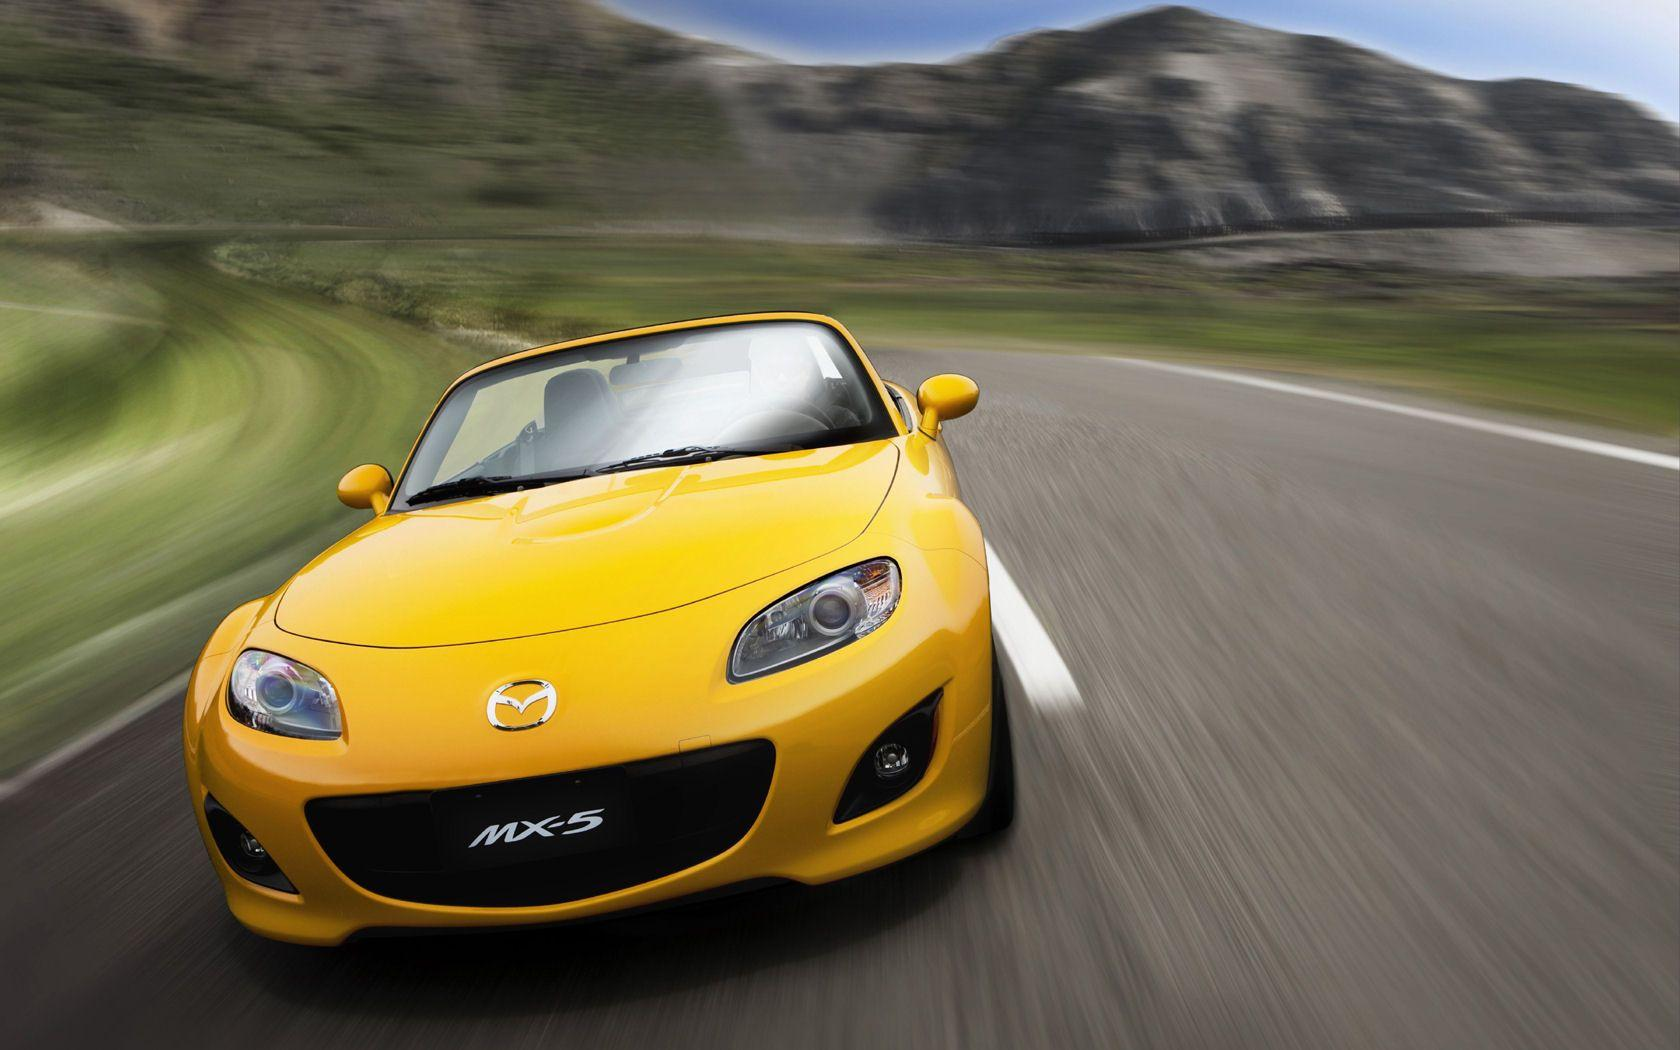 Mazda MX5 Miata, MX-5, Hardtop - Free Widescreen Wallpaper ...